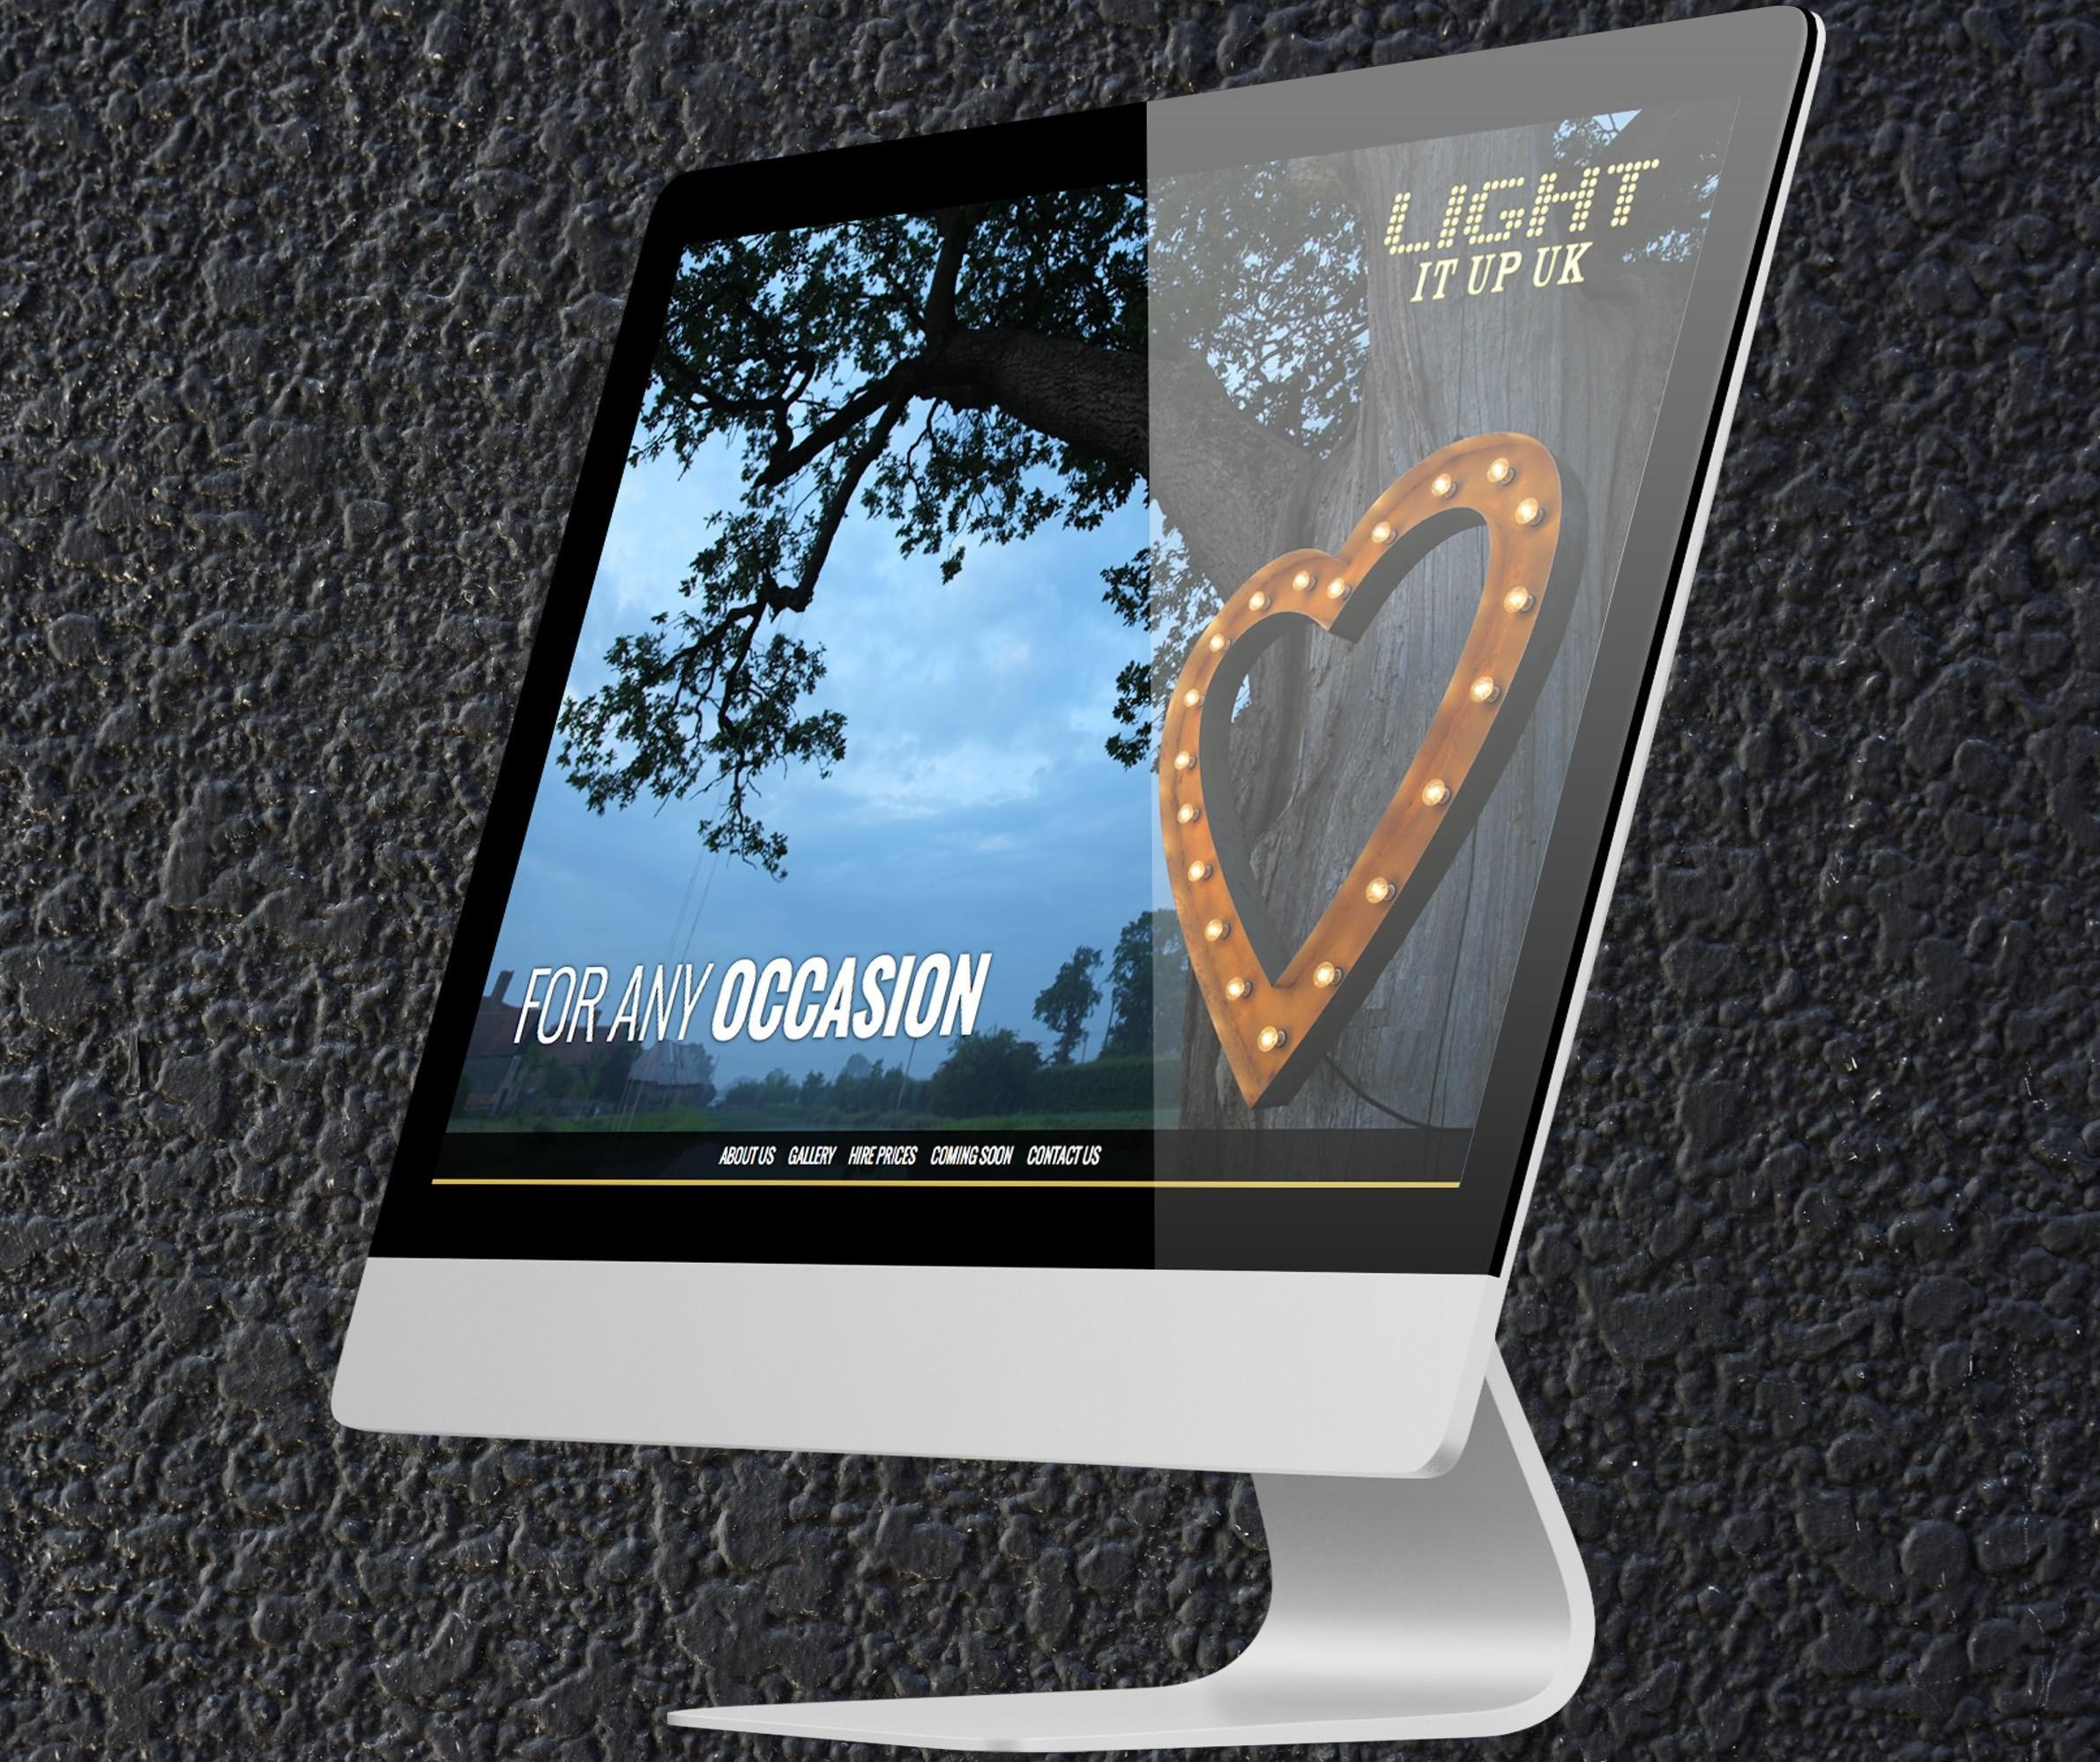 An image showing a desktop computer sitting at an angle and showing the homepage of the Light It Up UK website.